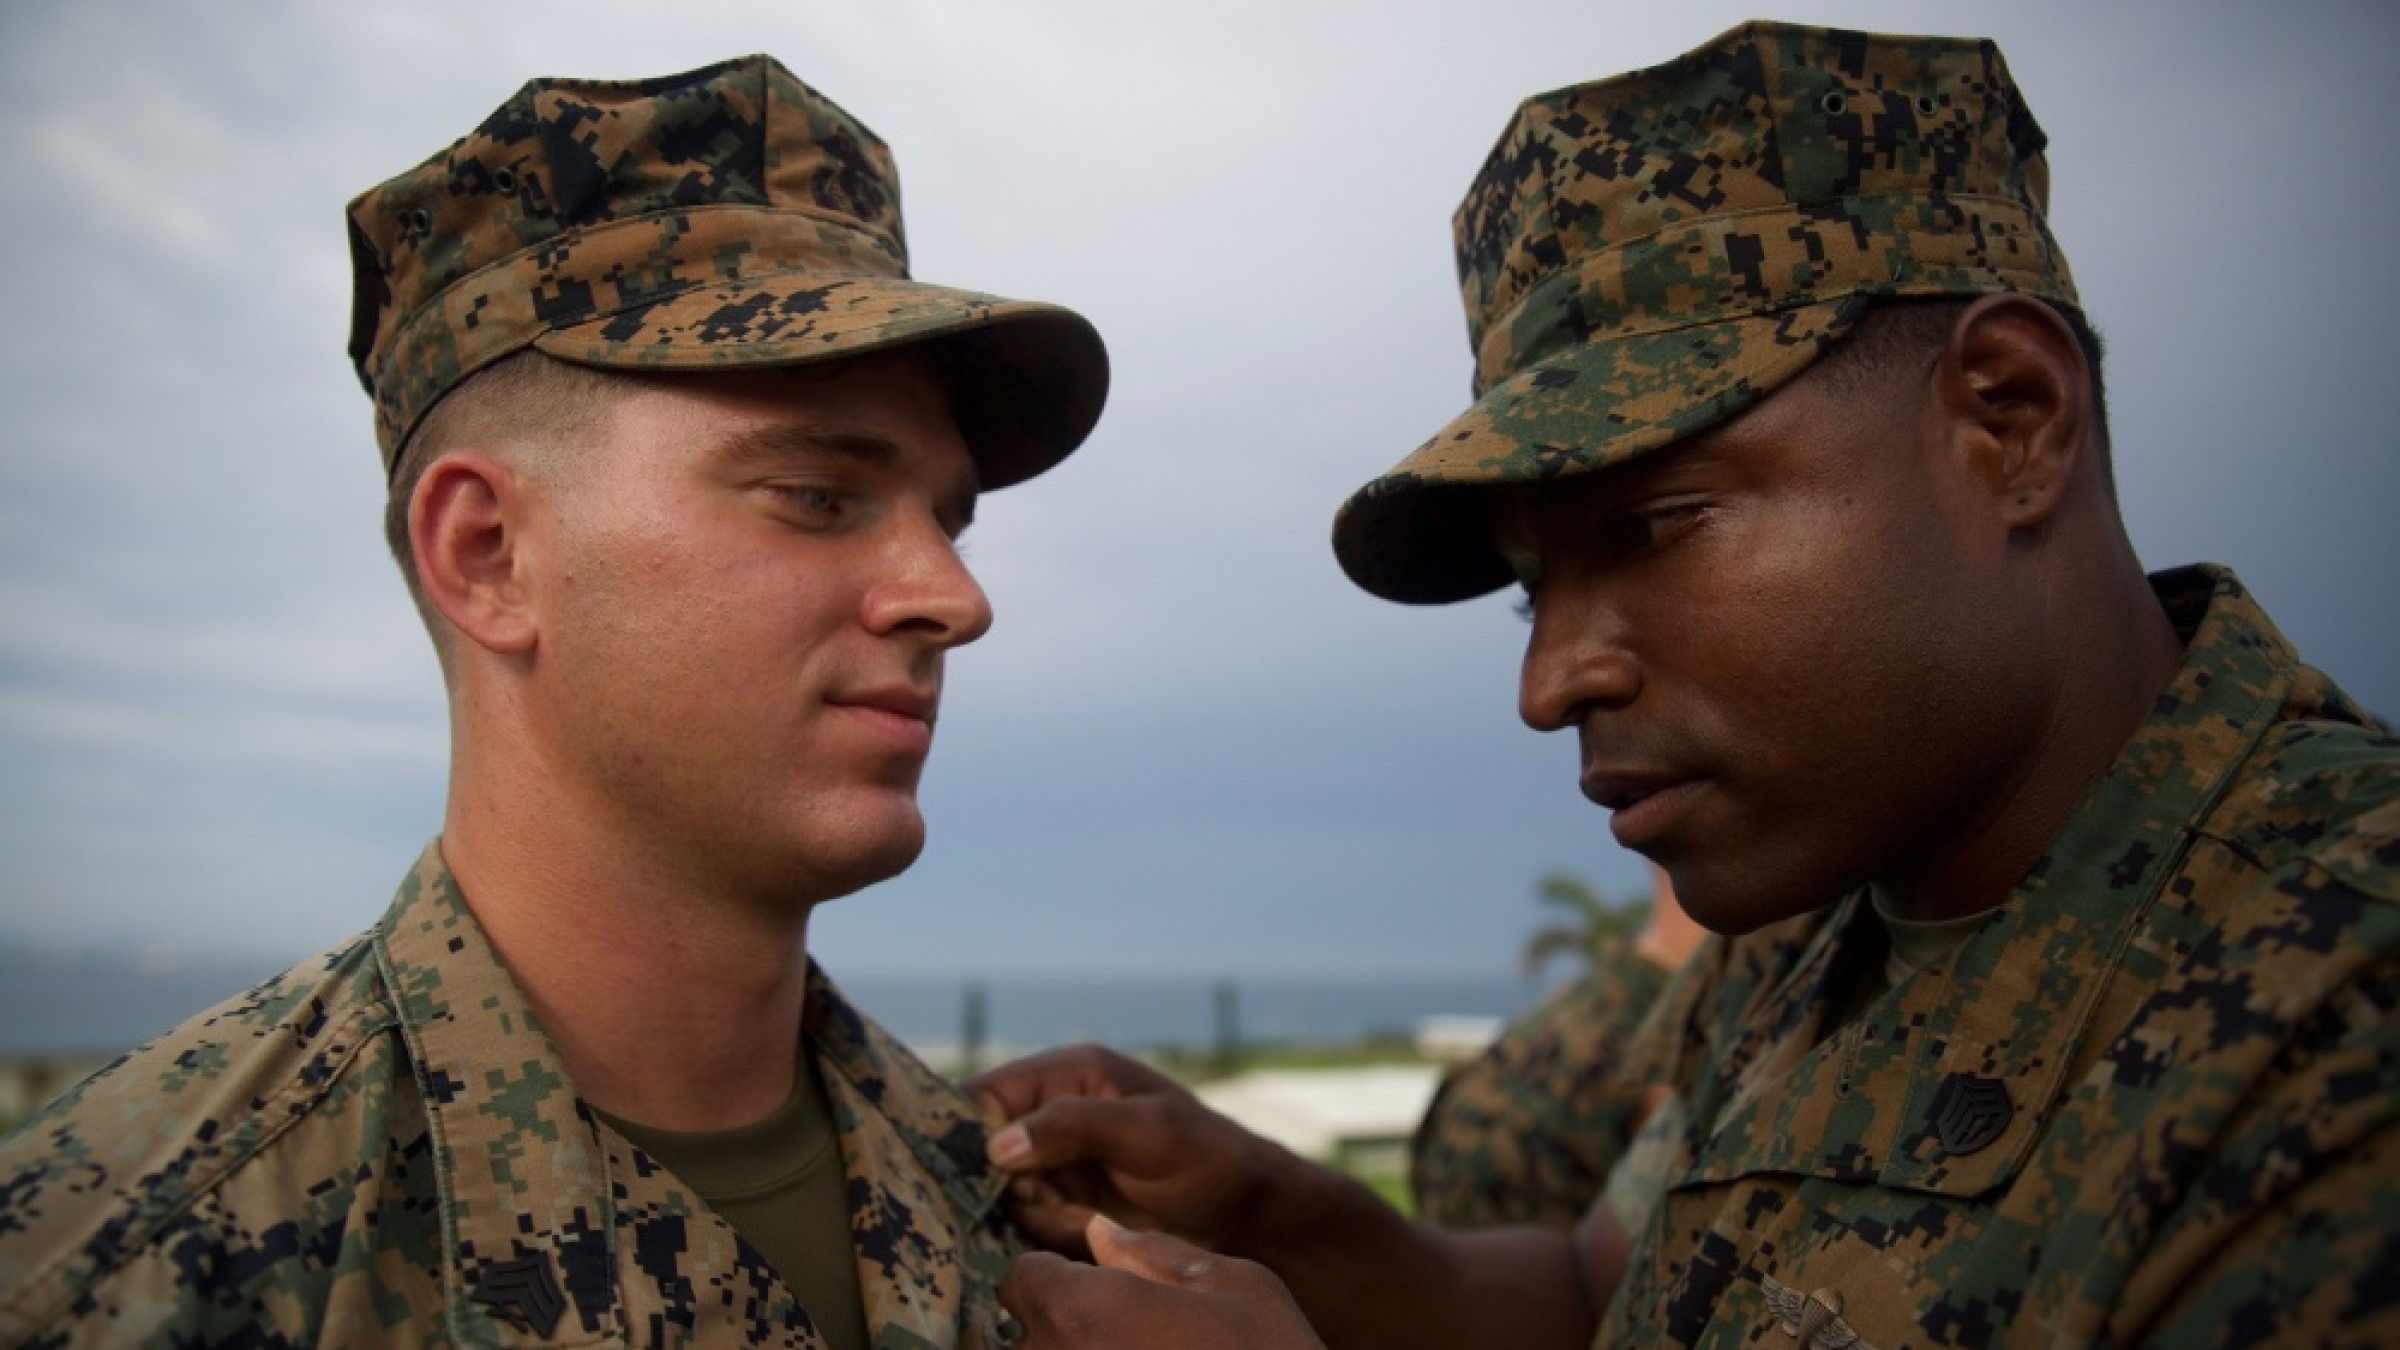 Marine is meritoriously promoted by staff sergeant.